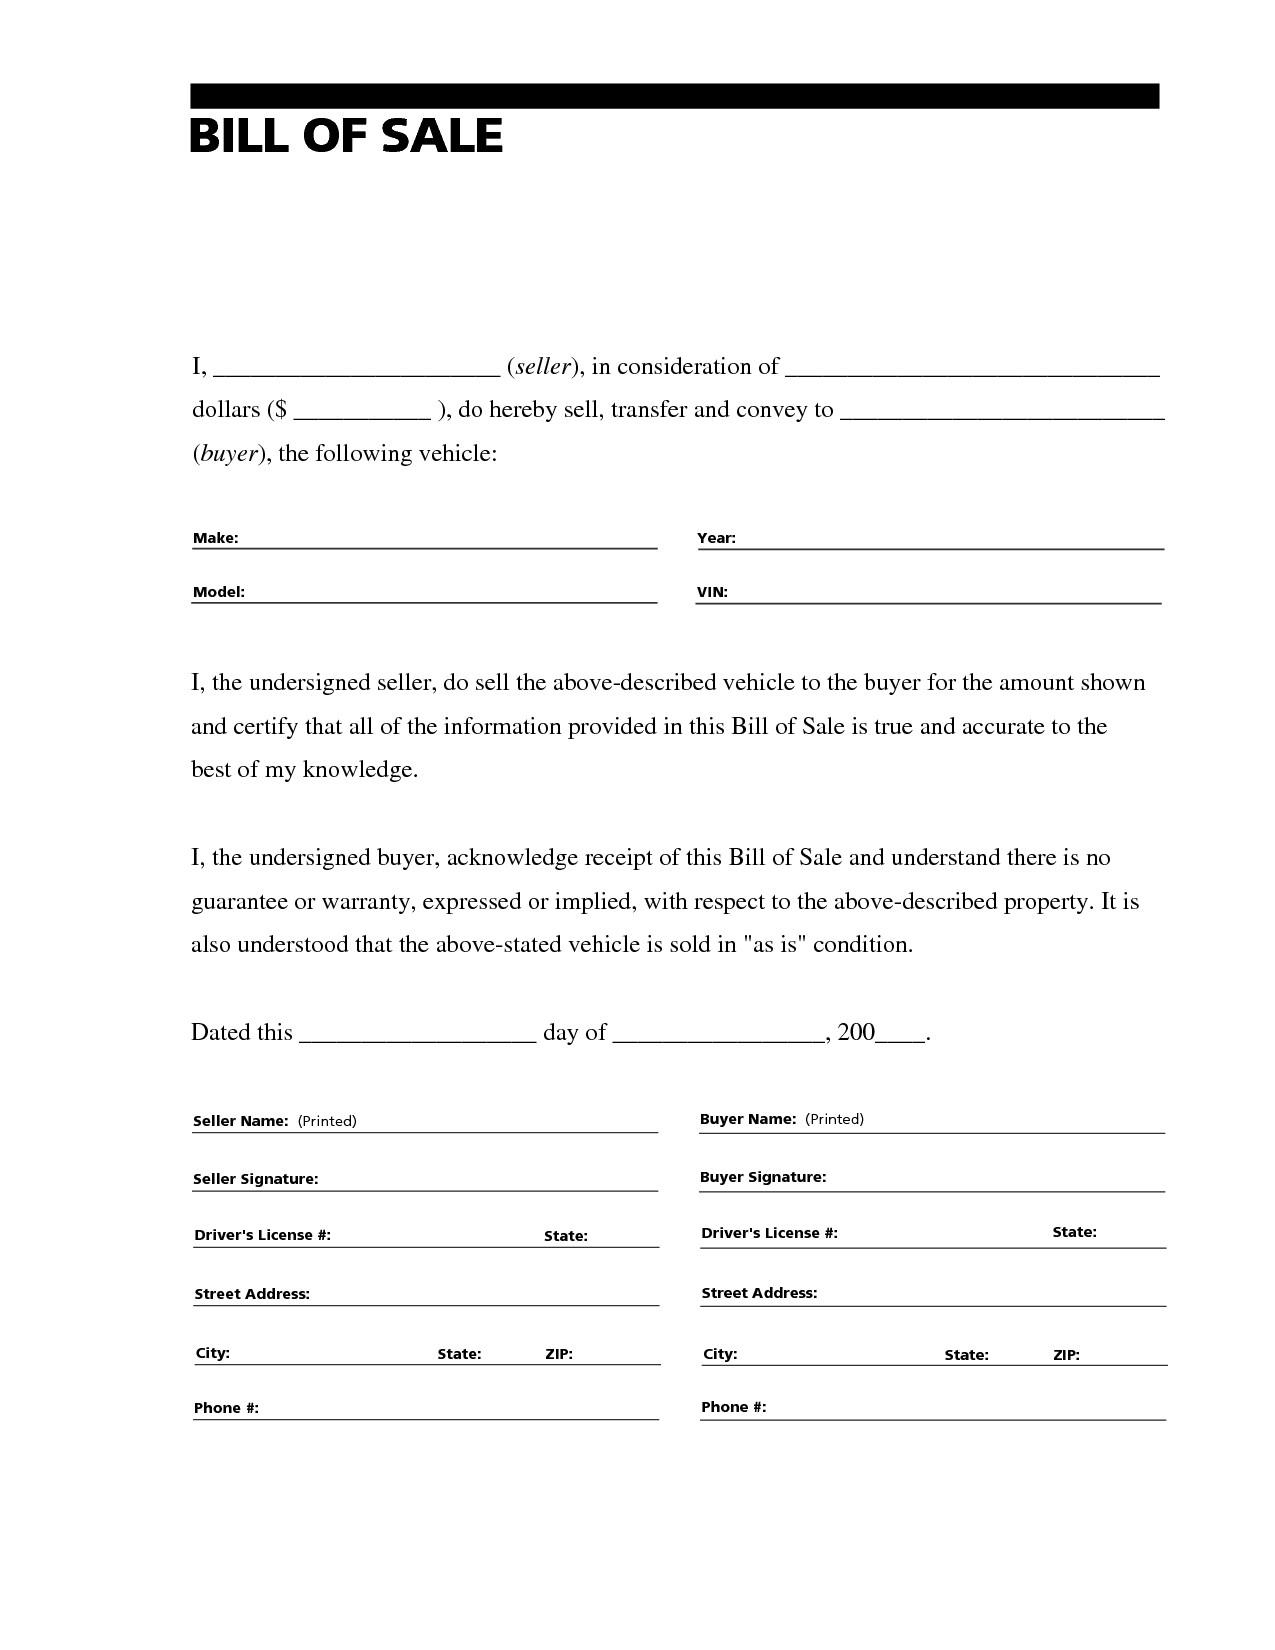 Free Printable Last Will And Testament Blank Forms Florida | Mbm Legal - Free Printable Last Will And Testament Blank Forms